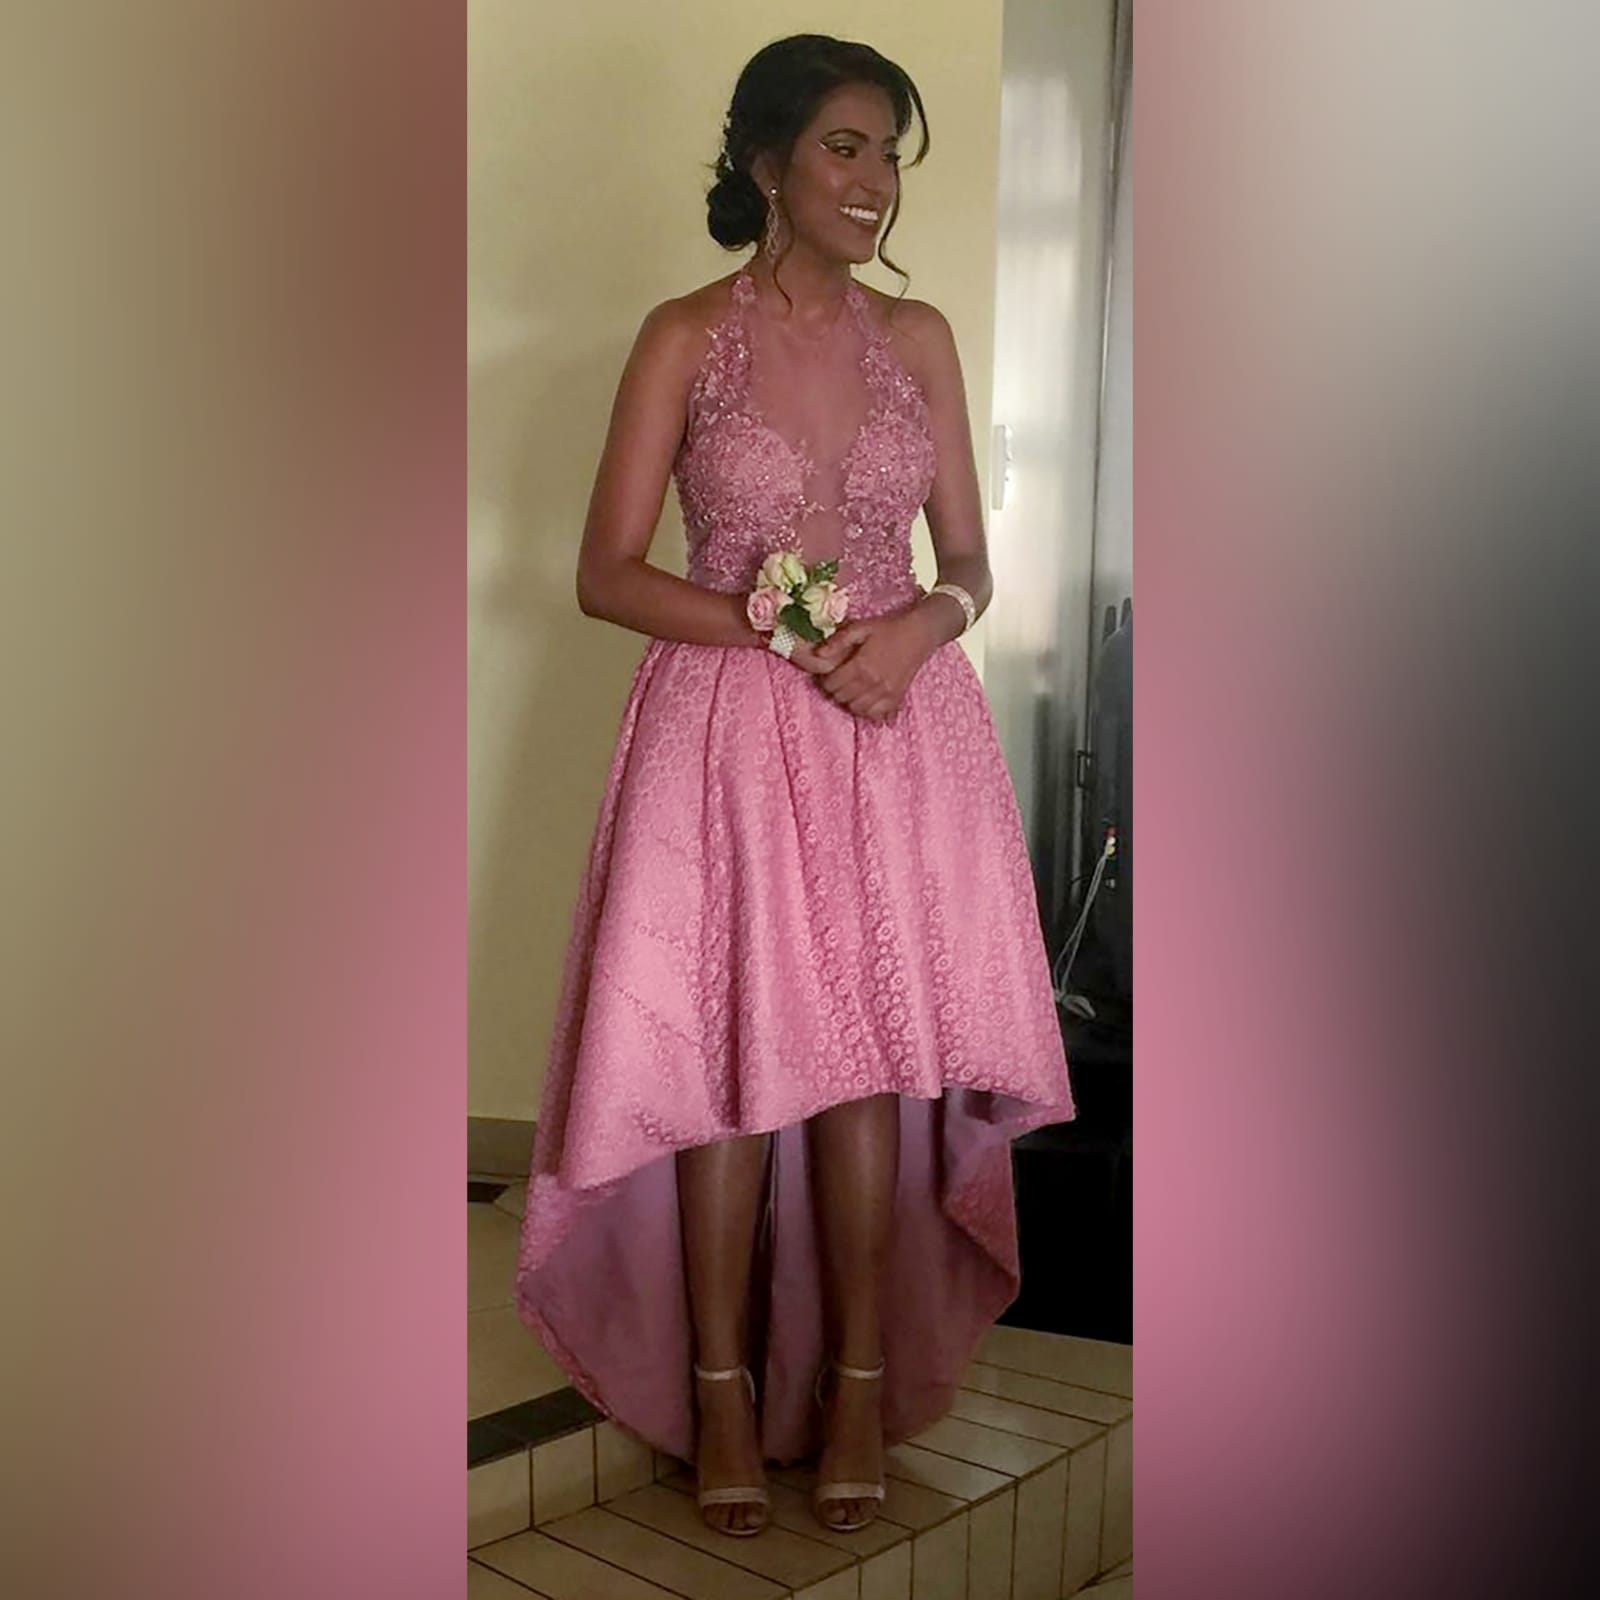 High low dusty pink prom dress 1 high low dusty pink prom dress with an illusion bodice detailed with beaded lace. Bottom fully laced.